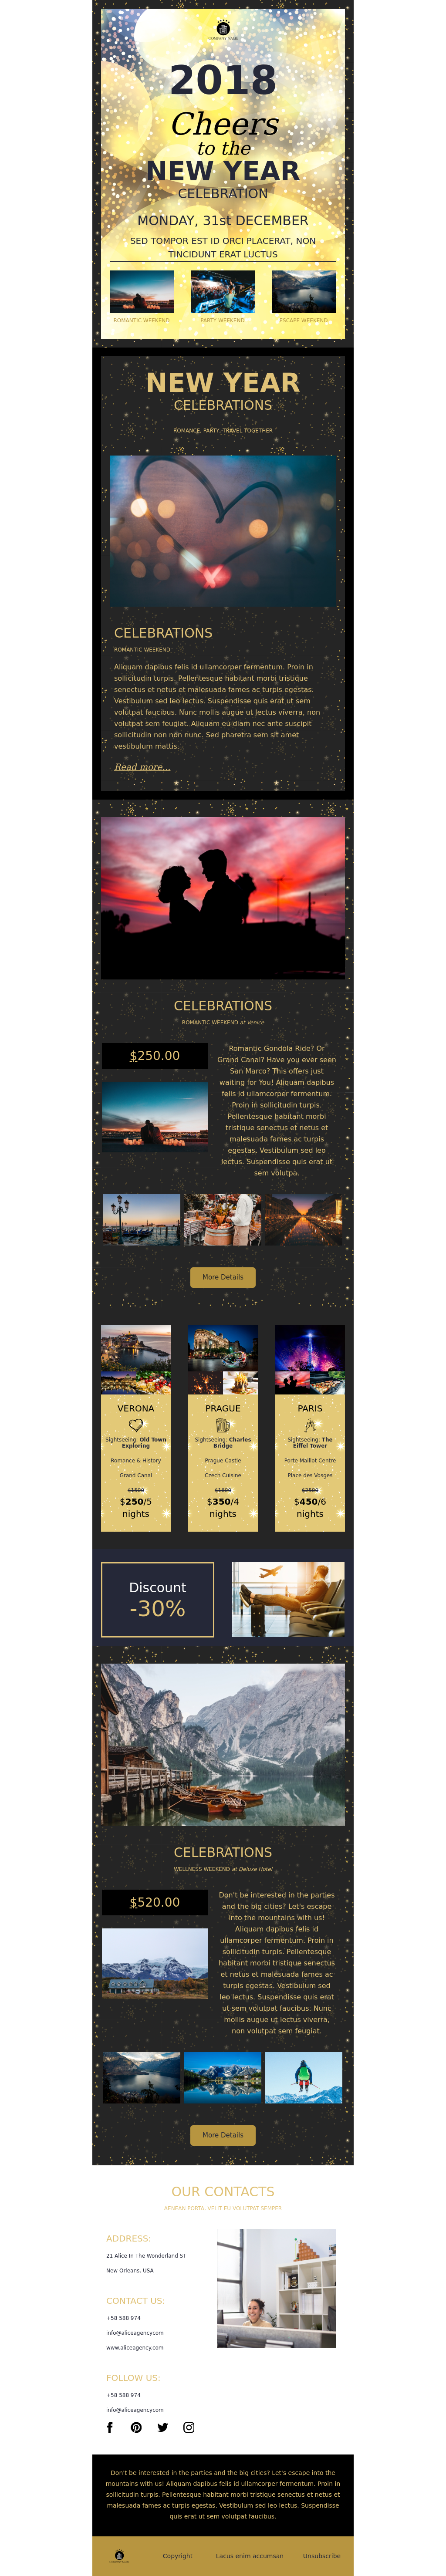 New Year's Eve Email Campaign Template